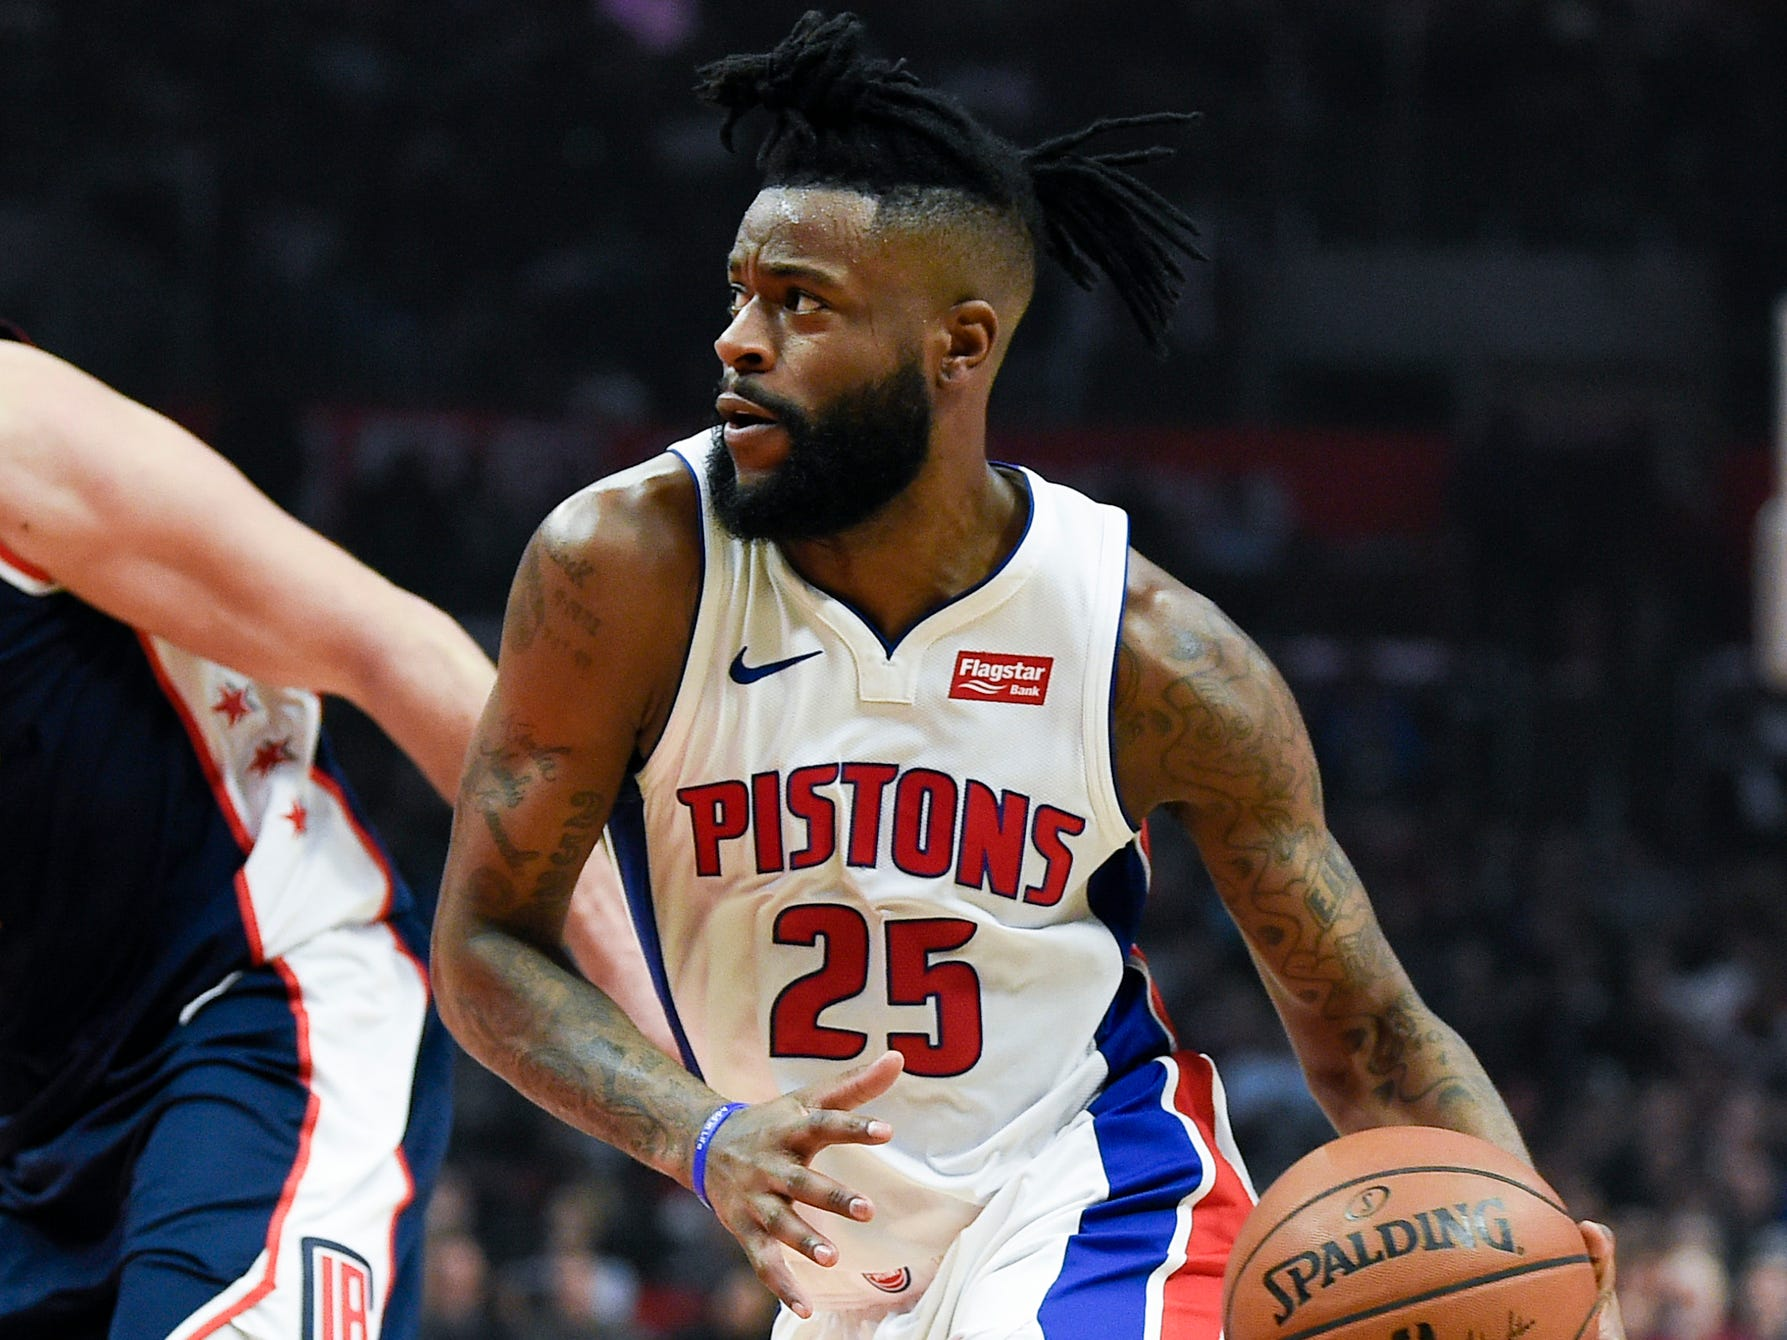 Pistons guard Reggie Bullock drives to the basket ahead of Clippers forward Danilo Gallinari during the first half on Jan. 12, 2019, in Los Angeles.